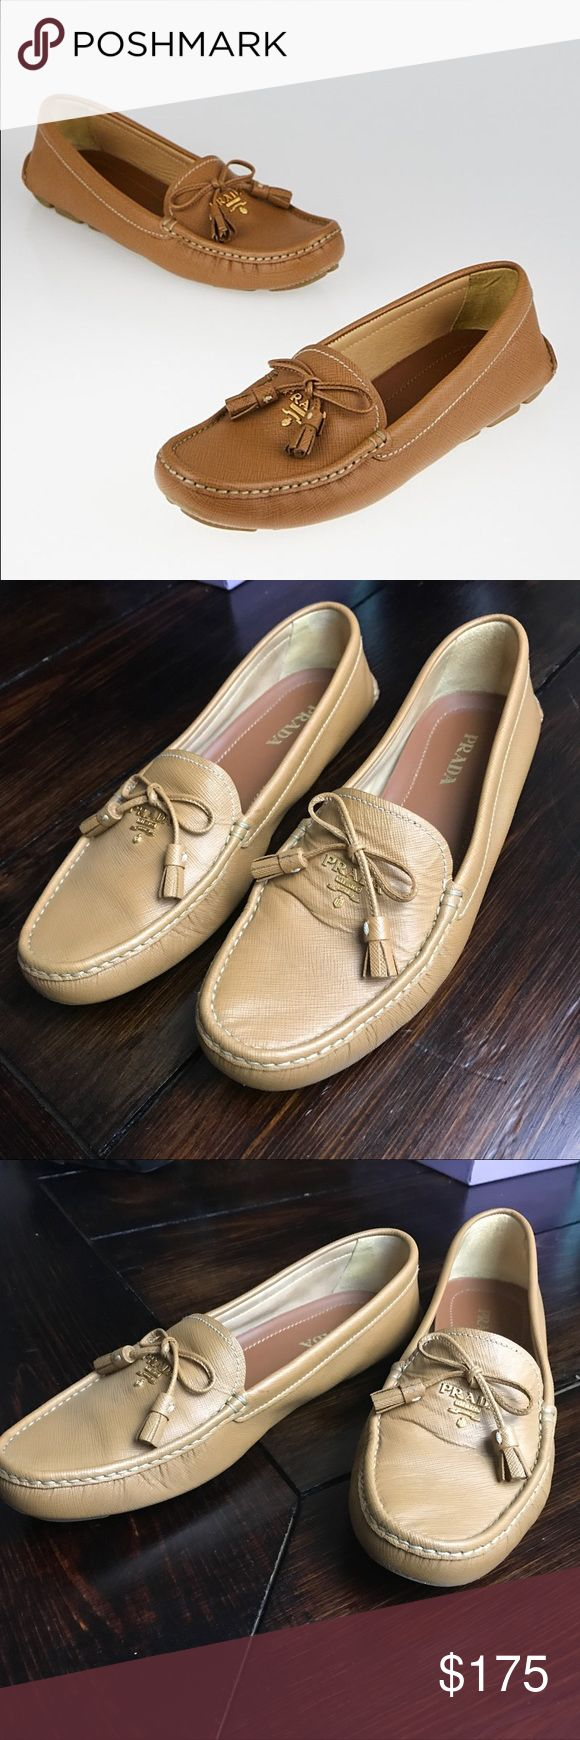 Prada Tan Saffiano Leather Tassel Driving Loafers These sophisticated and classic Prada Tan Saffiano Leather Tassel Driving Loafers are a great addition to any wardrobe! These elegant Saffiano leather loafers are a moccasin construction that are accessorized with a raised silvertone Prada logo and bow at the vamp with tassels. Rubber soles for a comfortable fit and a touch of class. Prada Shoes Flats & Loafers